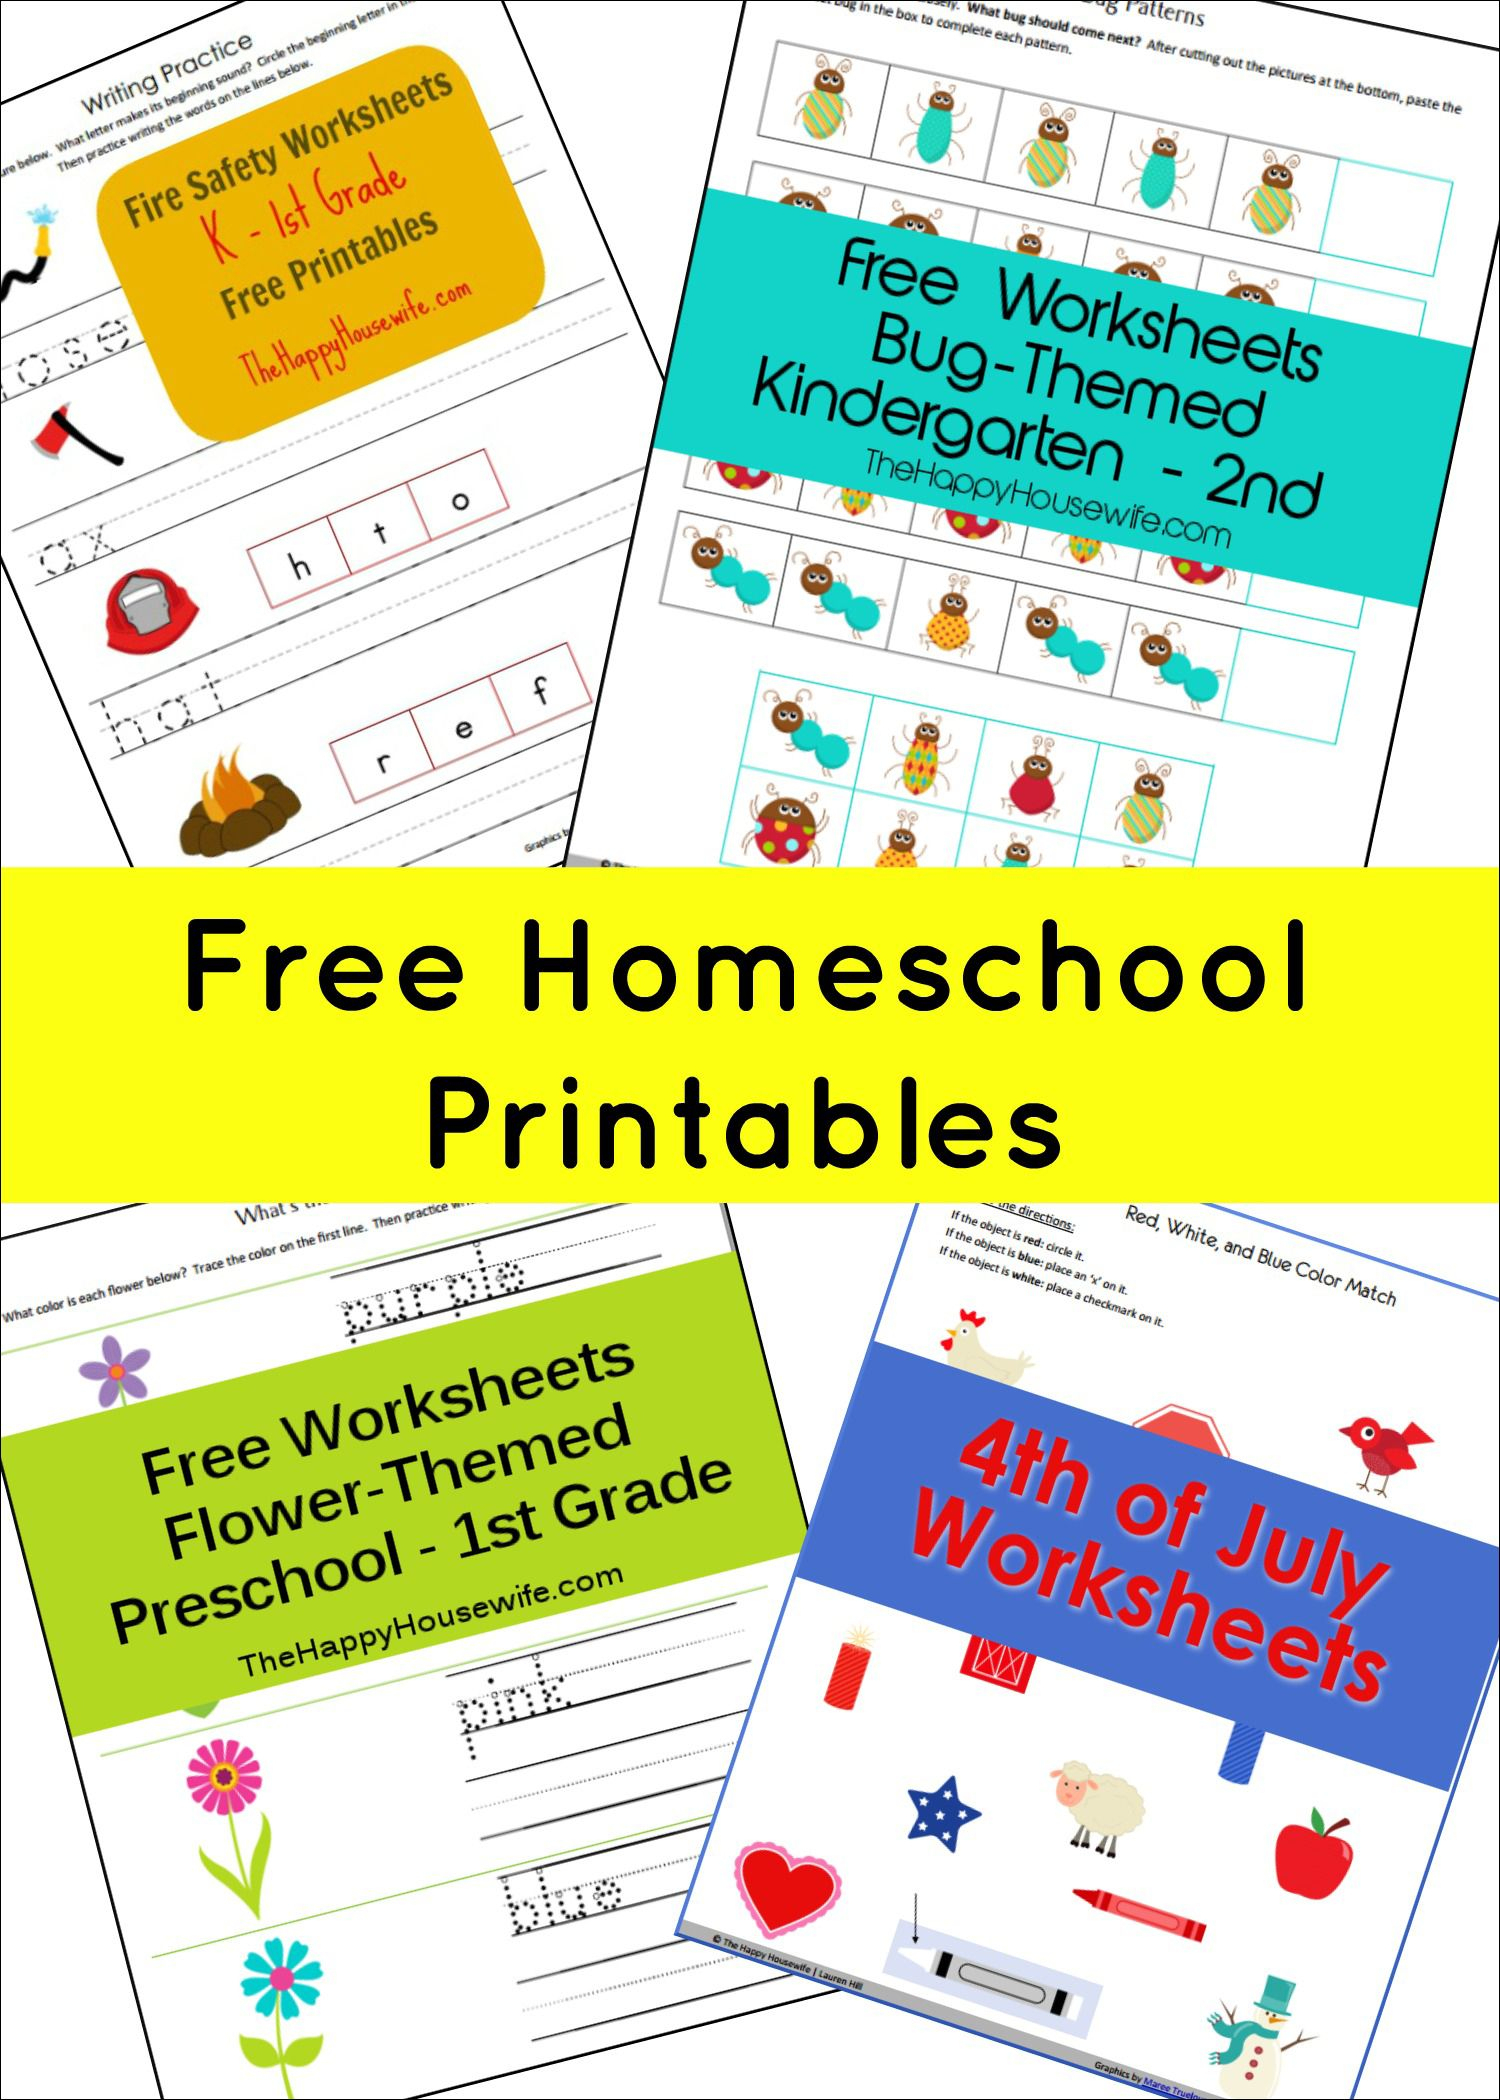 Free Printable Worksheets | Free Printables | Homeschool, Homeschool - Free Homeschool Printable Worksheets